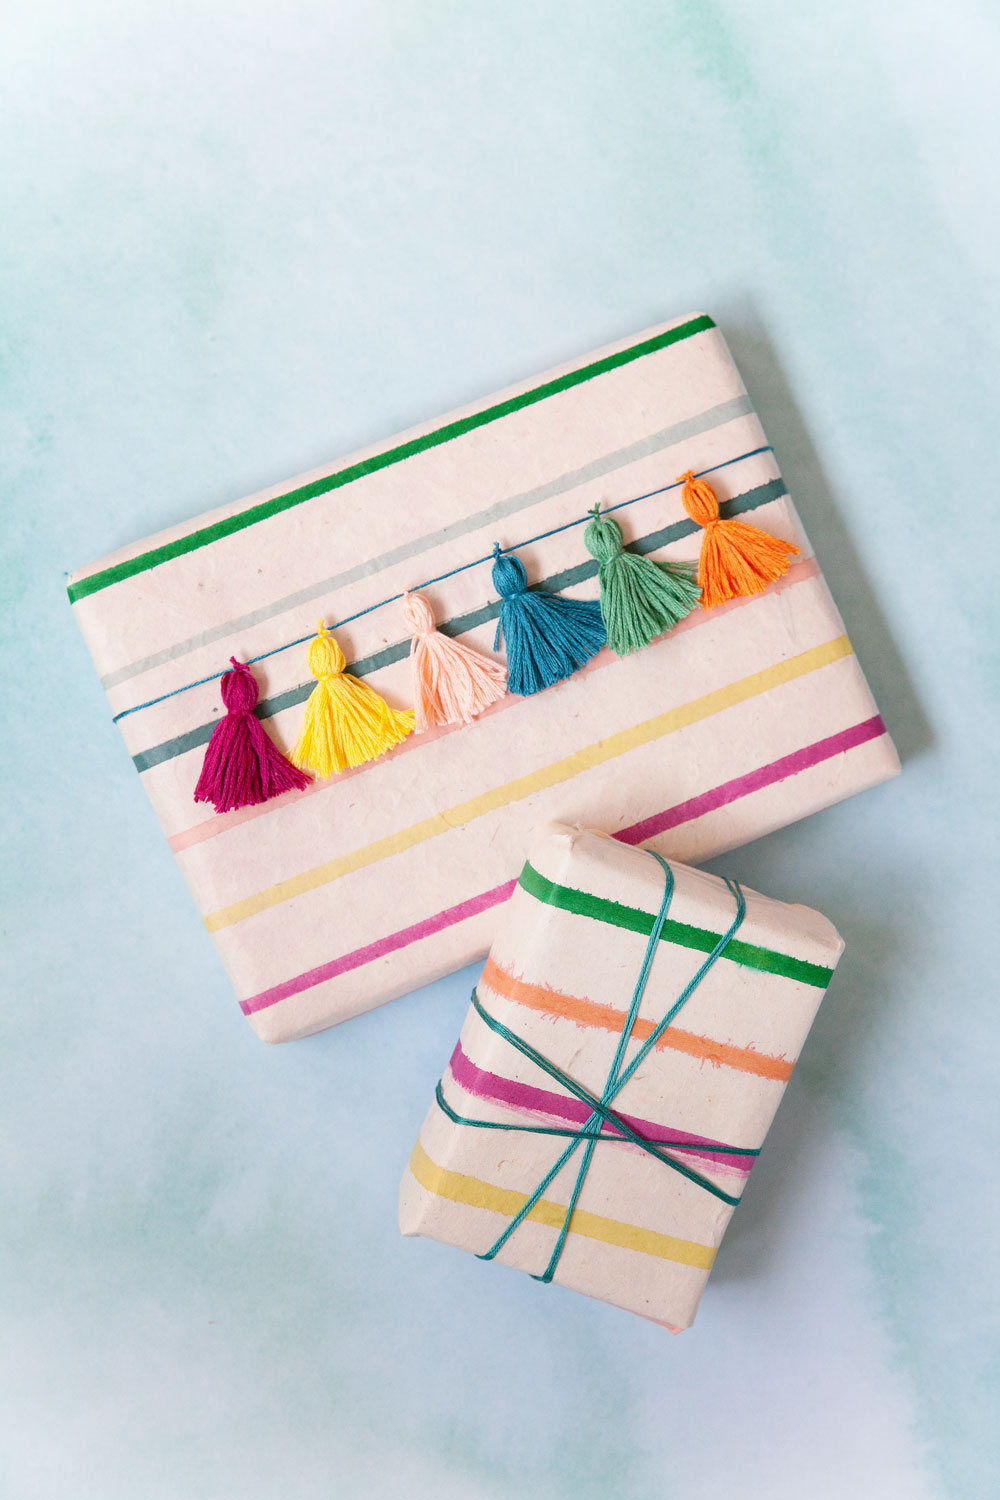 Wrapping-with-embroidery-thread-tassels